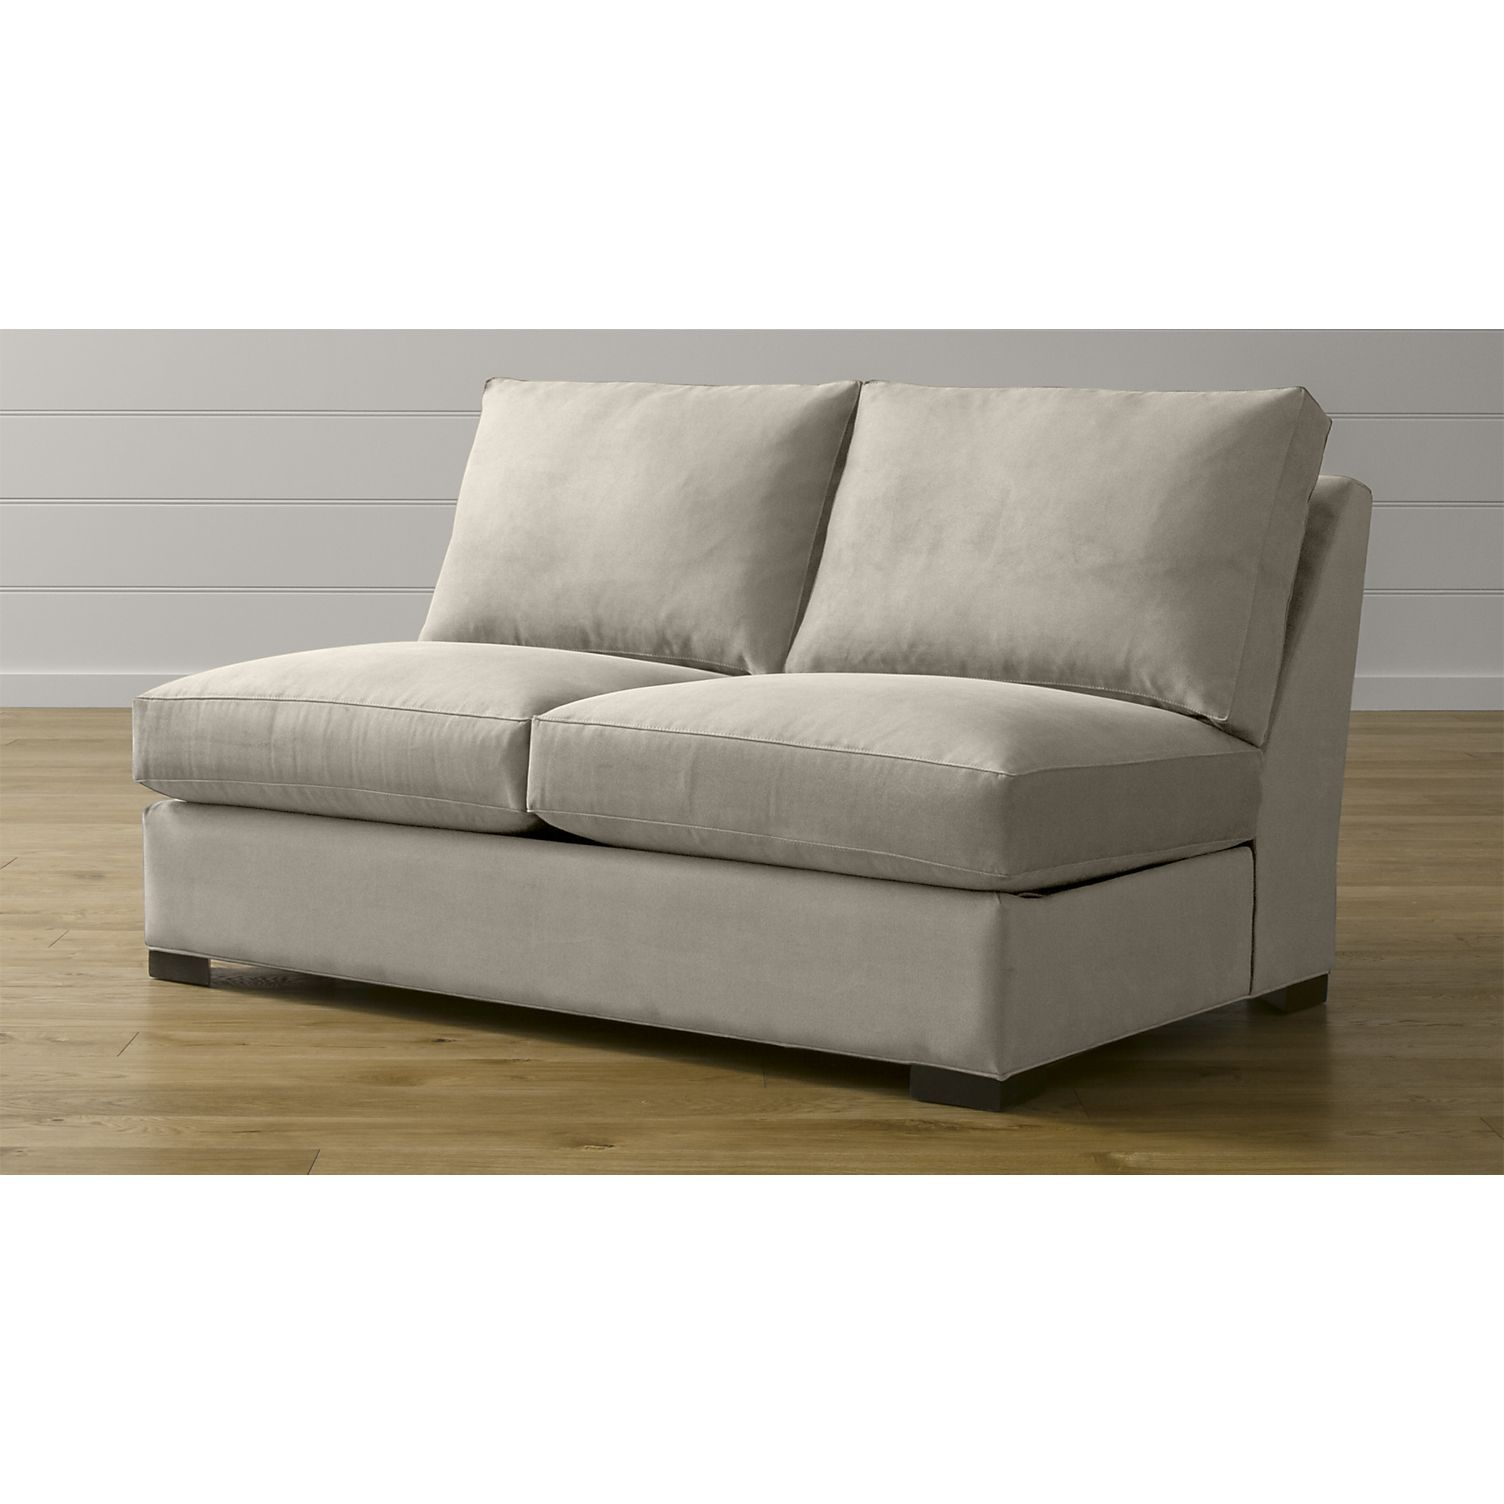 Axis II Armless Loveseat + Reviews Crate and Barrel